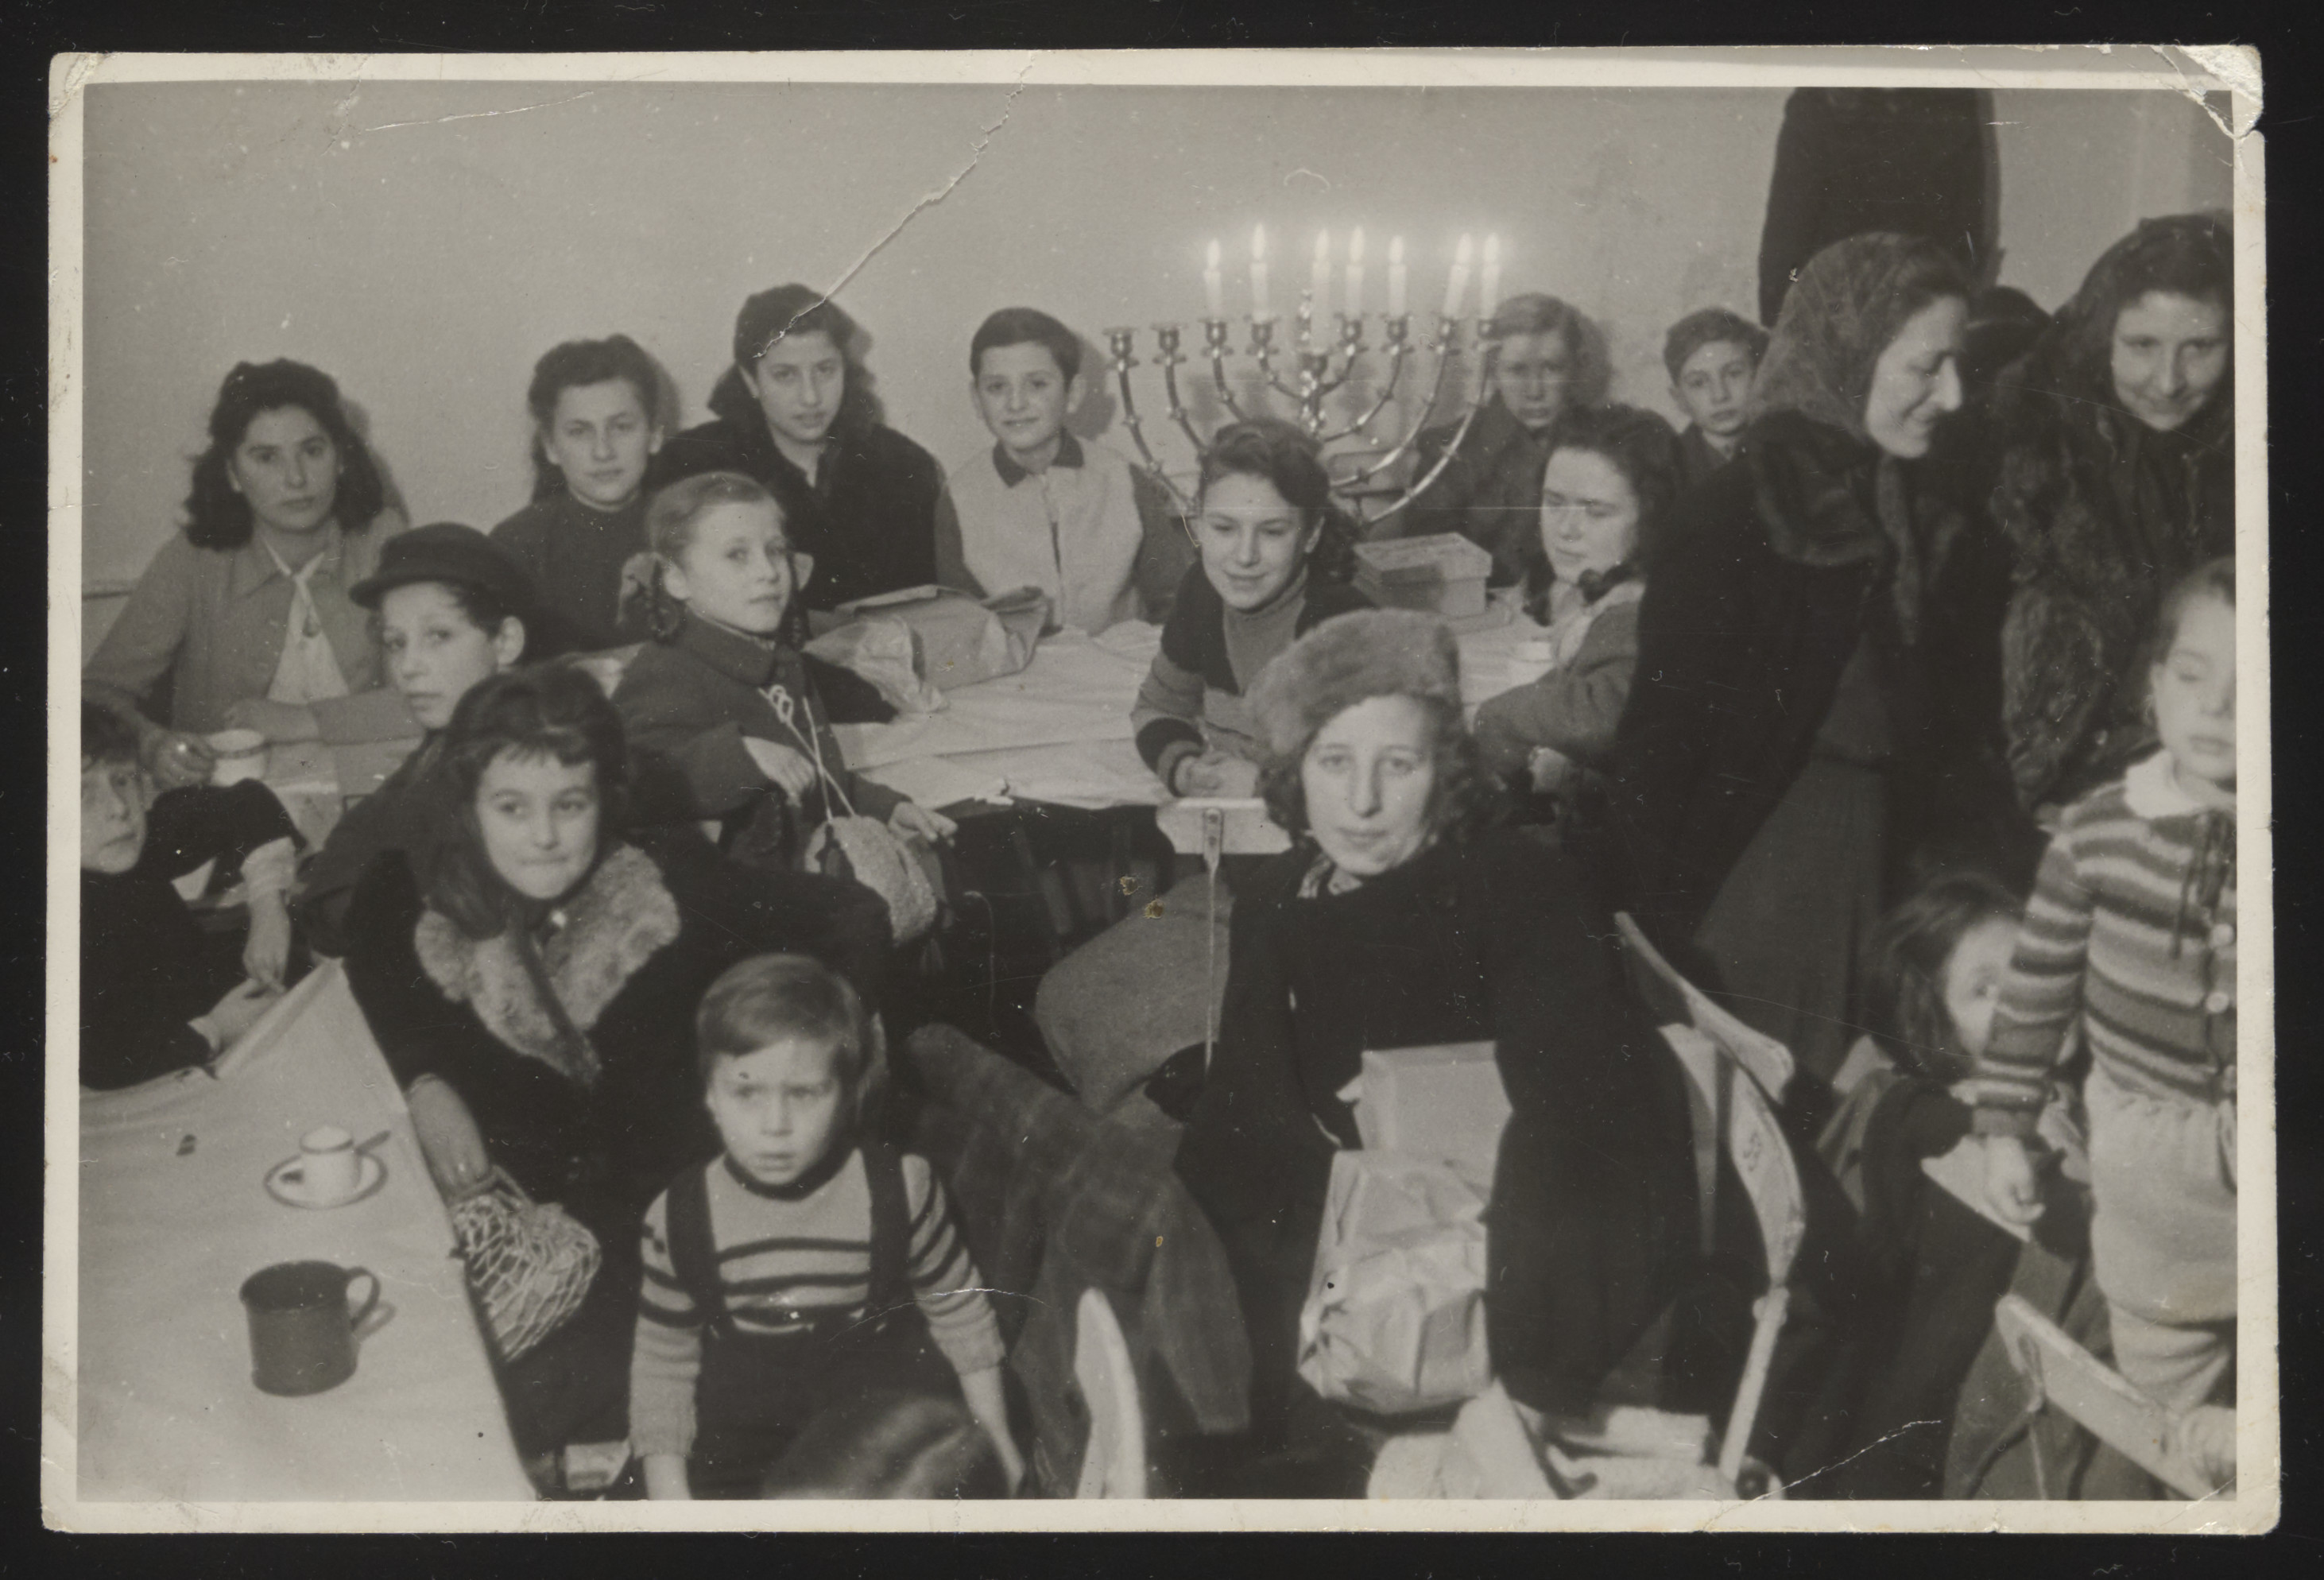 Children celebrate Channuka at the Jewish community center in Berlin after the war.